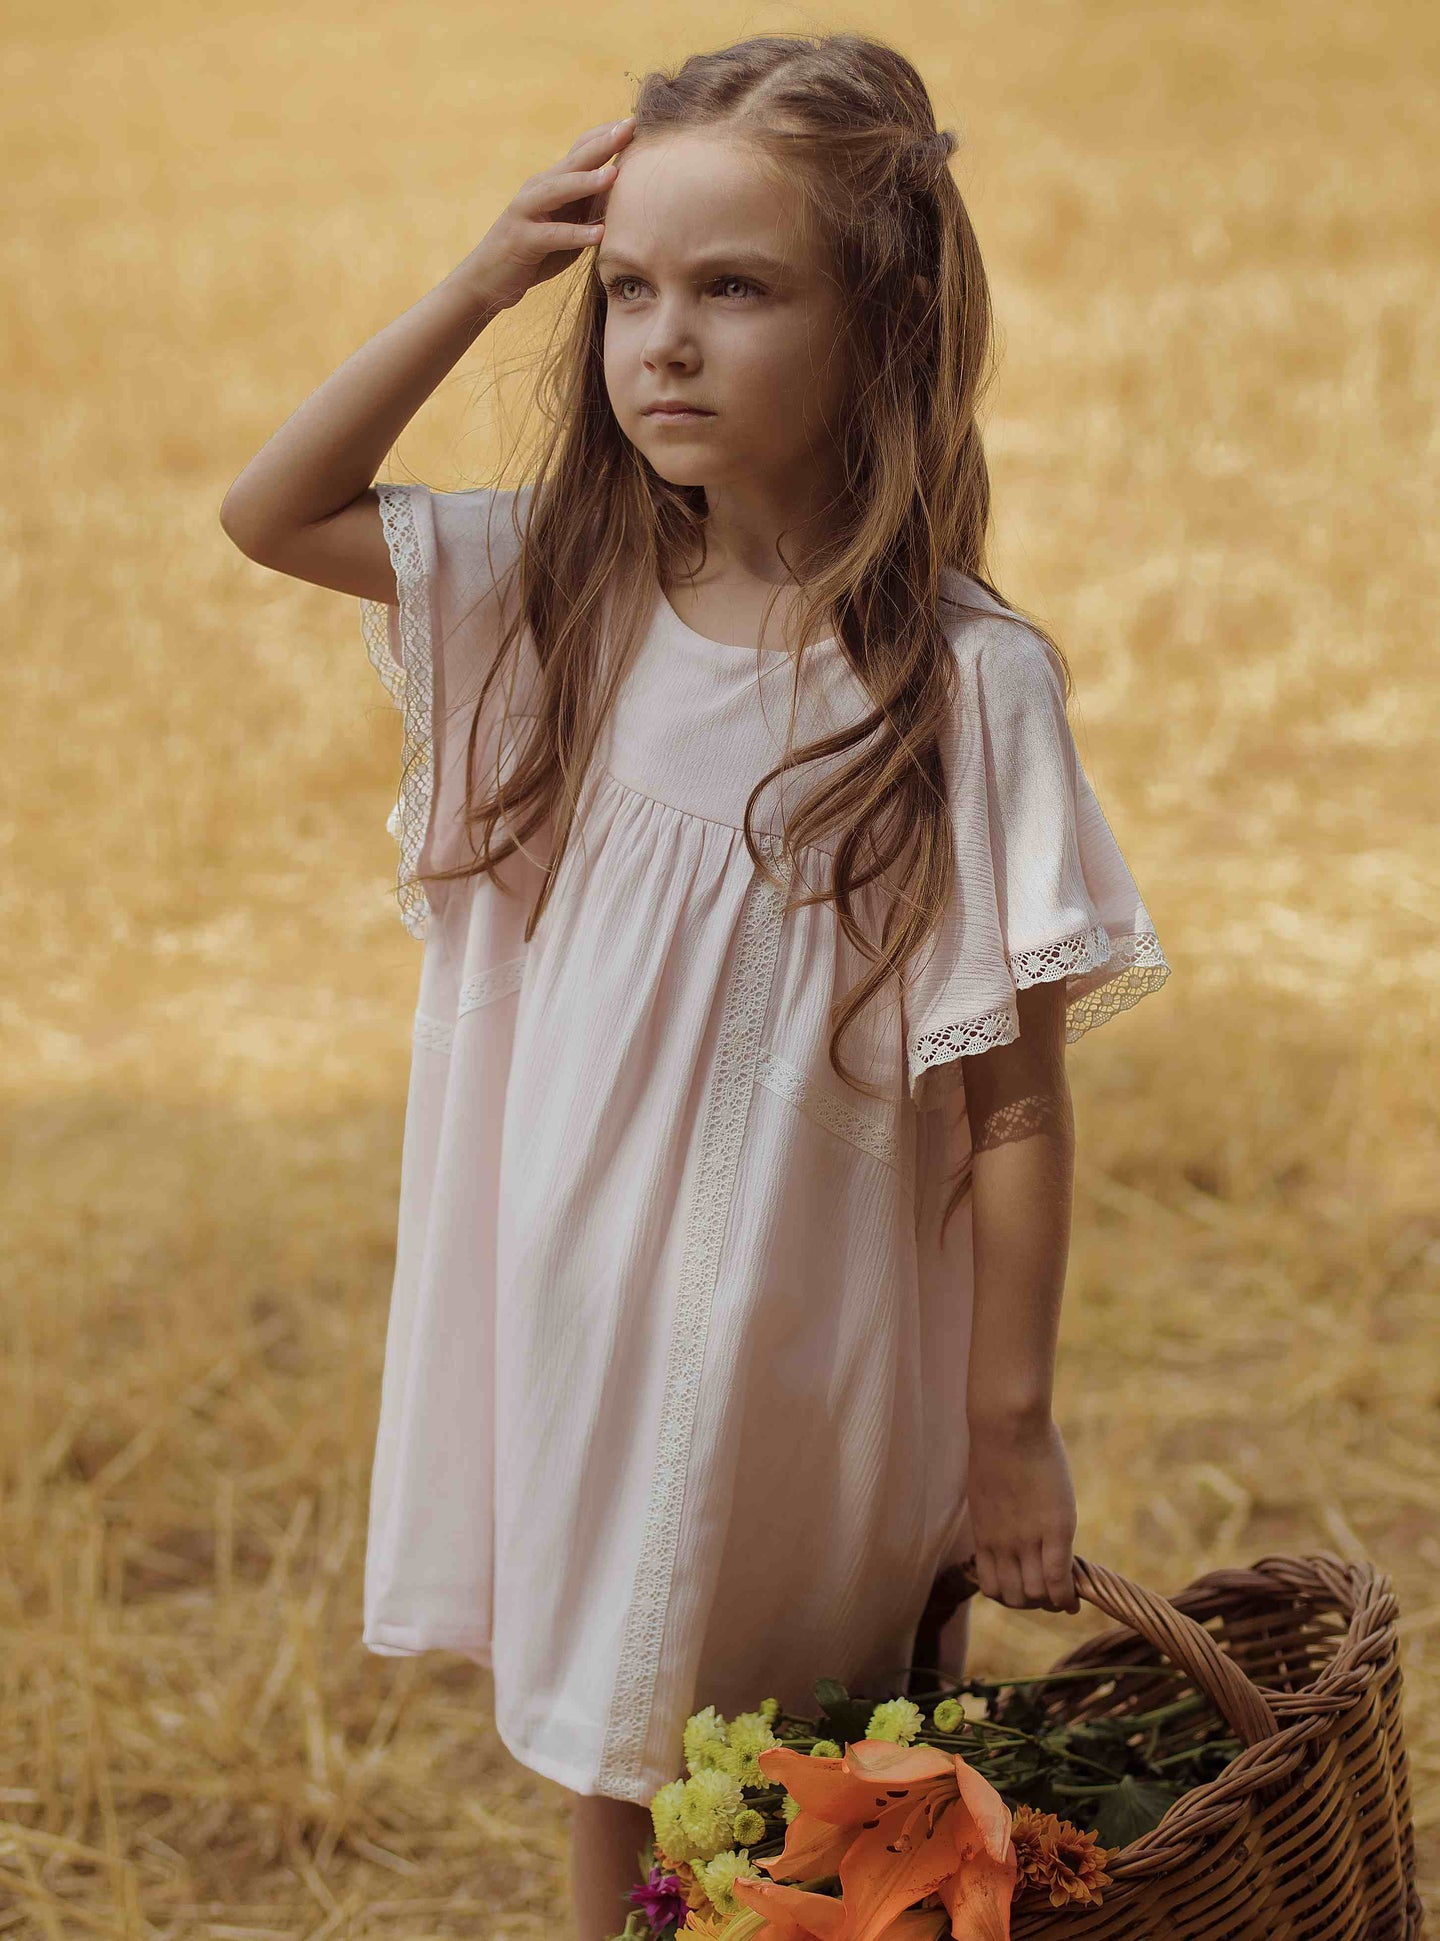 Beautiful vintage inspired dress in a delicate blush pink gauze fabric. Ruffled sleeves and lace cotton details.